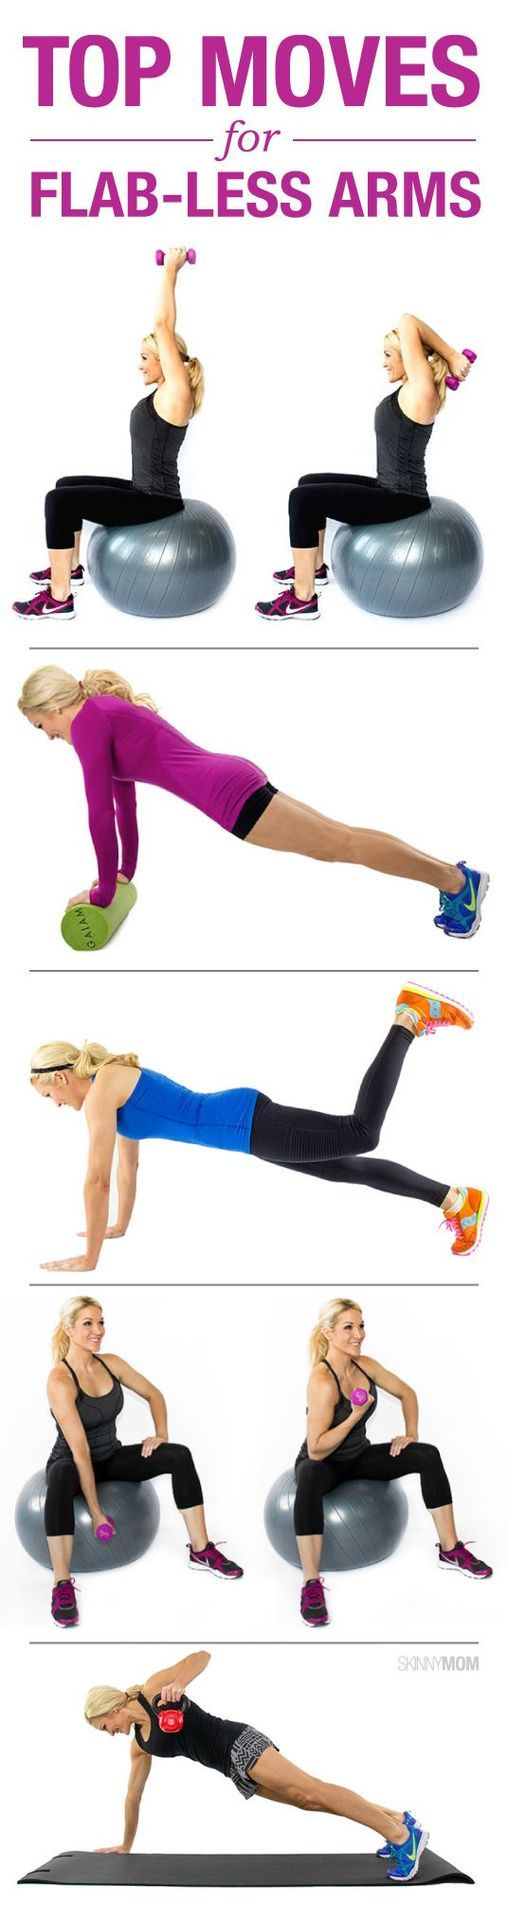 15 Fabulous Moves for Flab-less Arms. Pin now, check later.